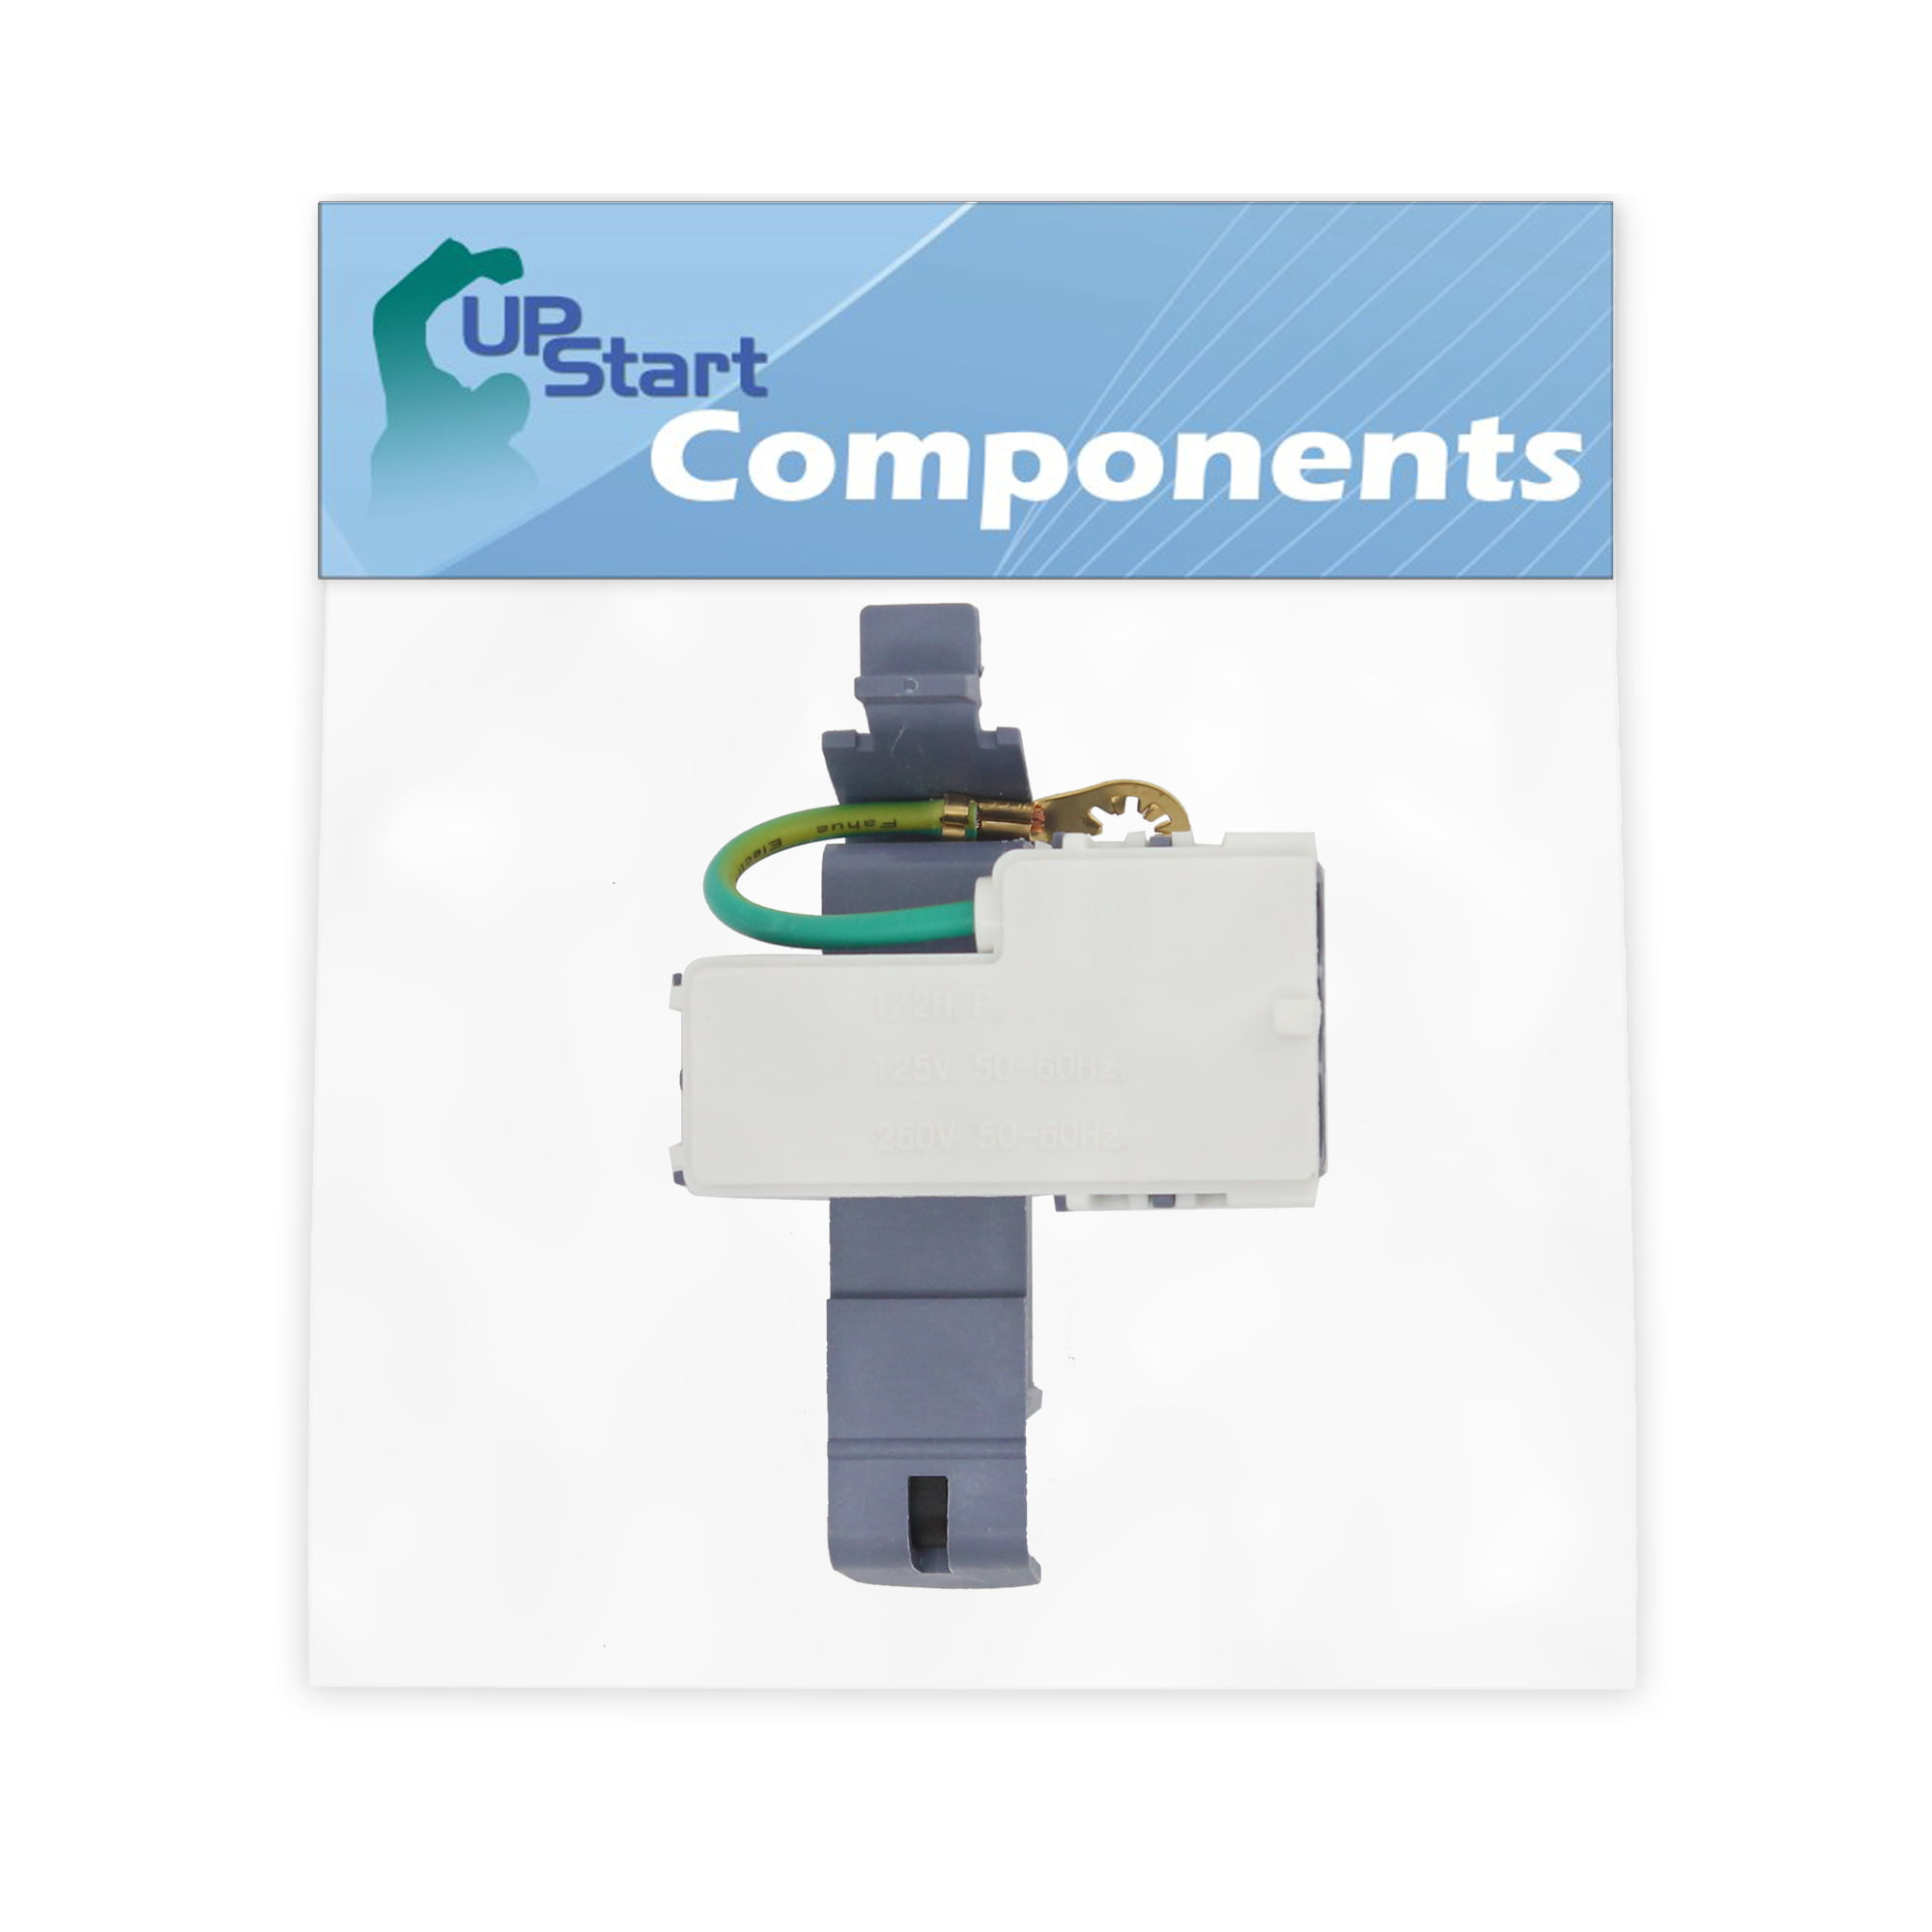 8318084 Washer Lid Switch Replacement for Whirlpool WTW5821SW0 Washer -  Compatible with WP8318084 Washer Lid Switch - UpStart Components Brand